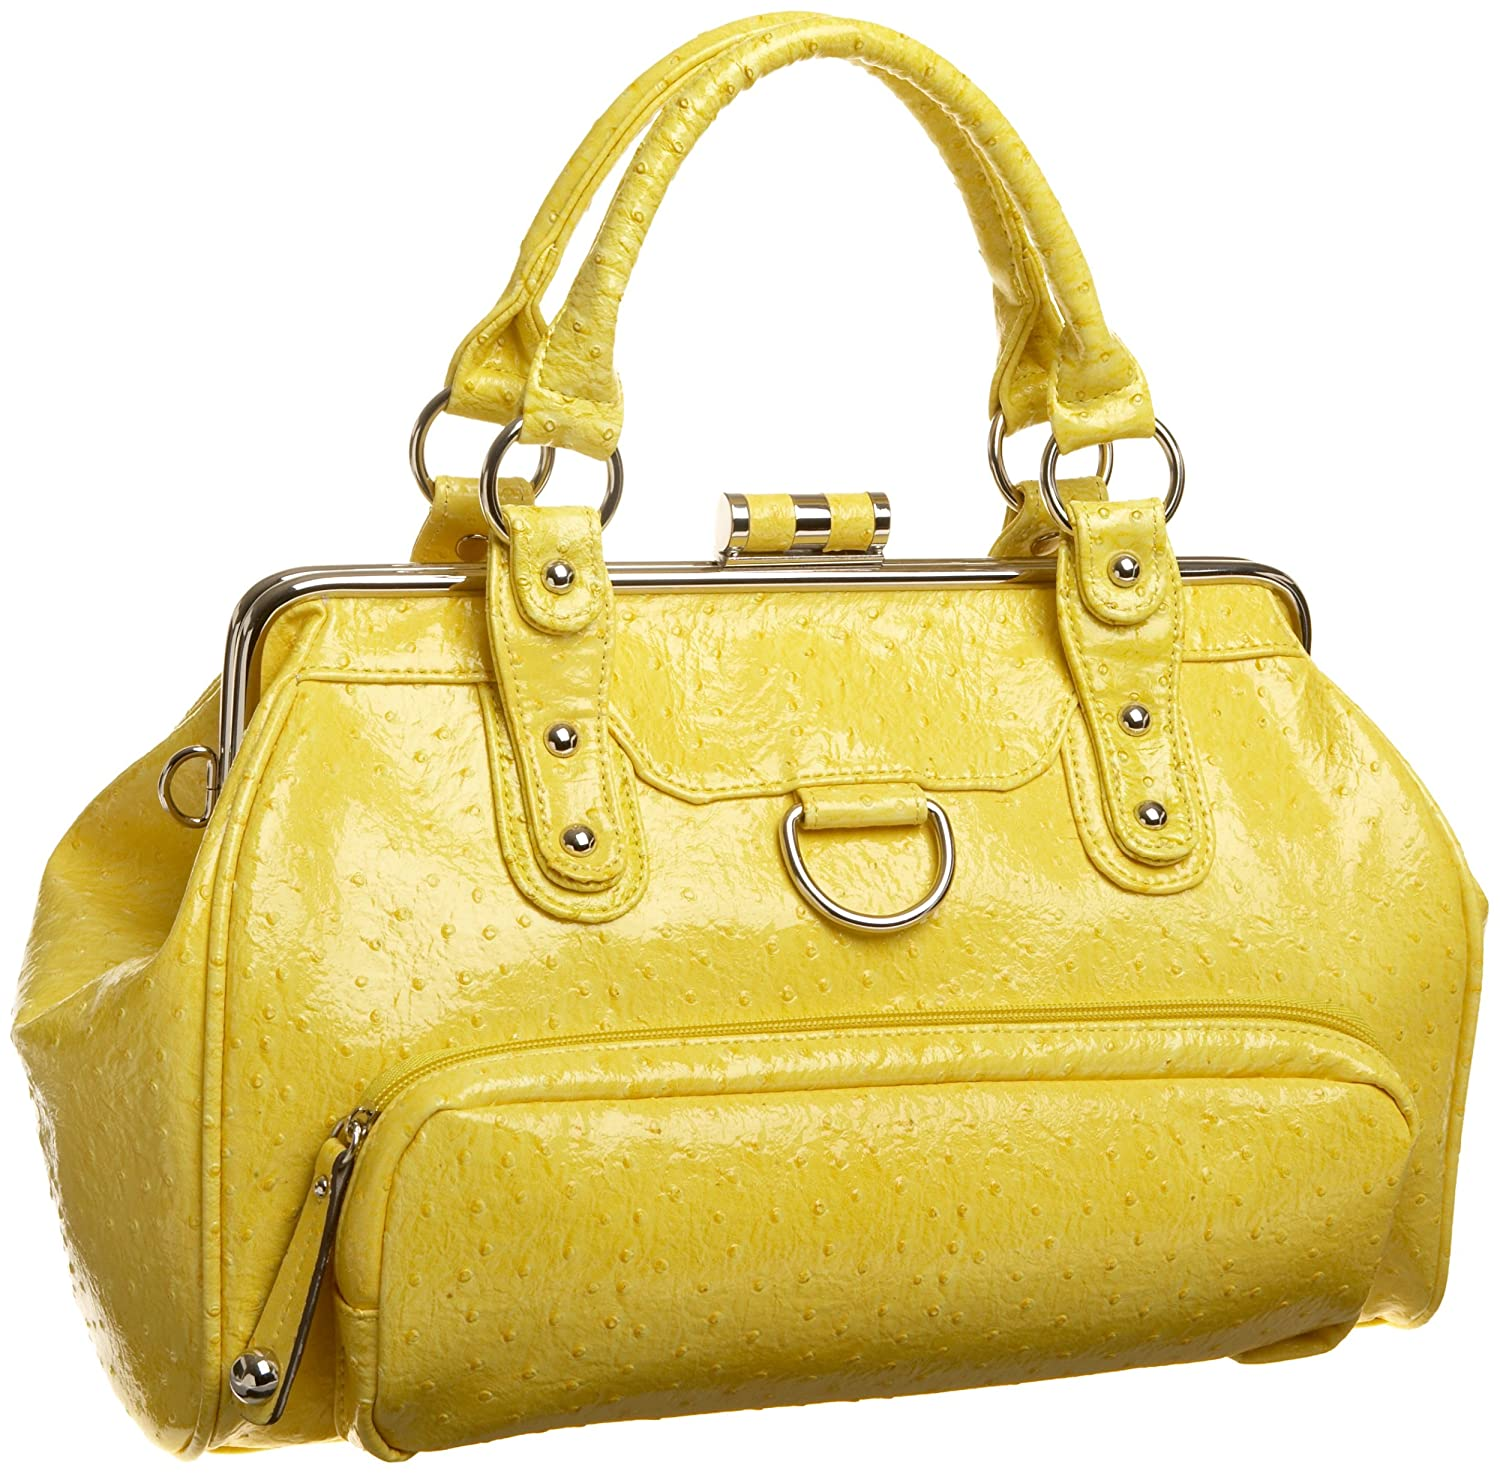 Rampage Misty Satchel - Free Overnight Shipping & Return Shipping: Endless.com :  handles lined yellow rampage